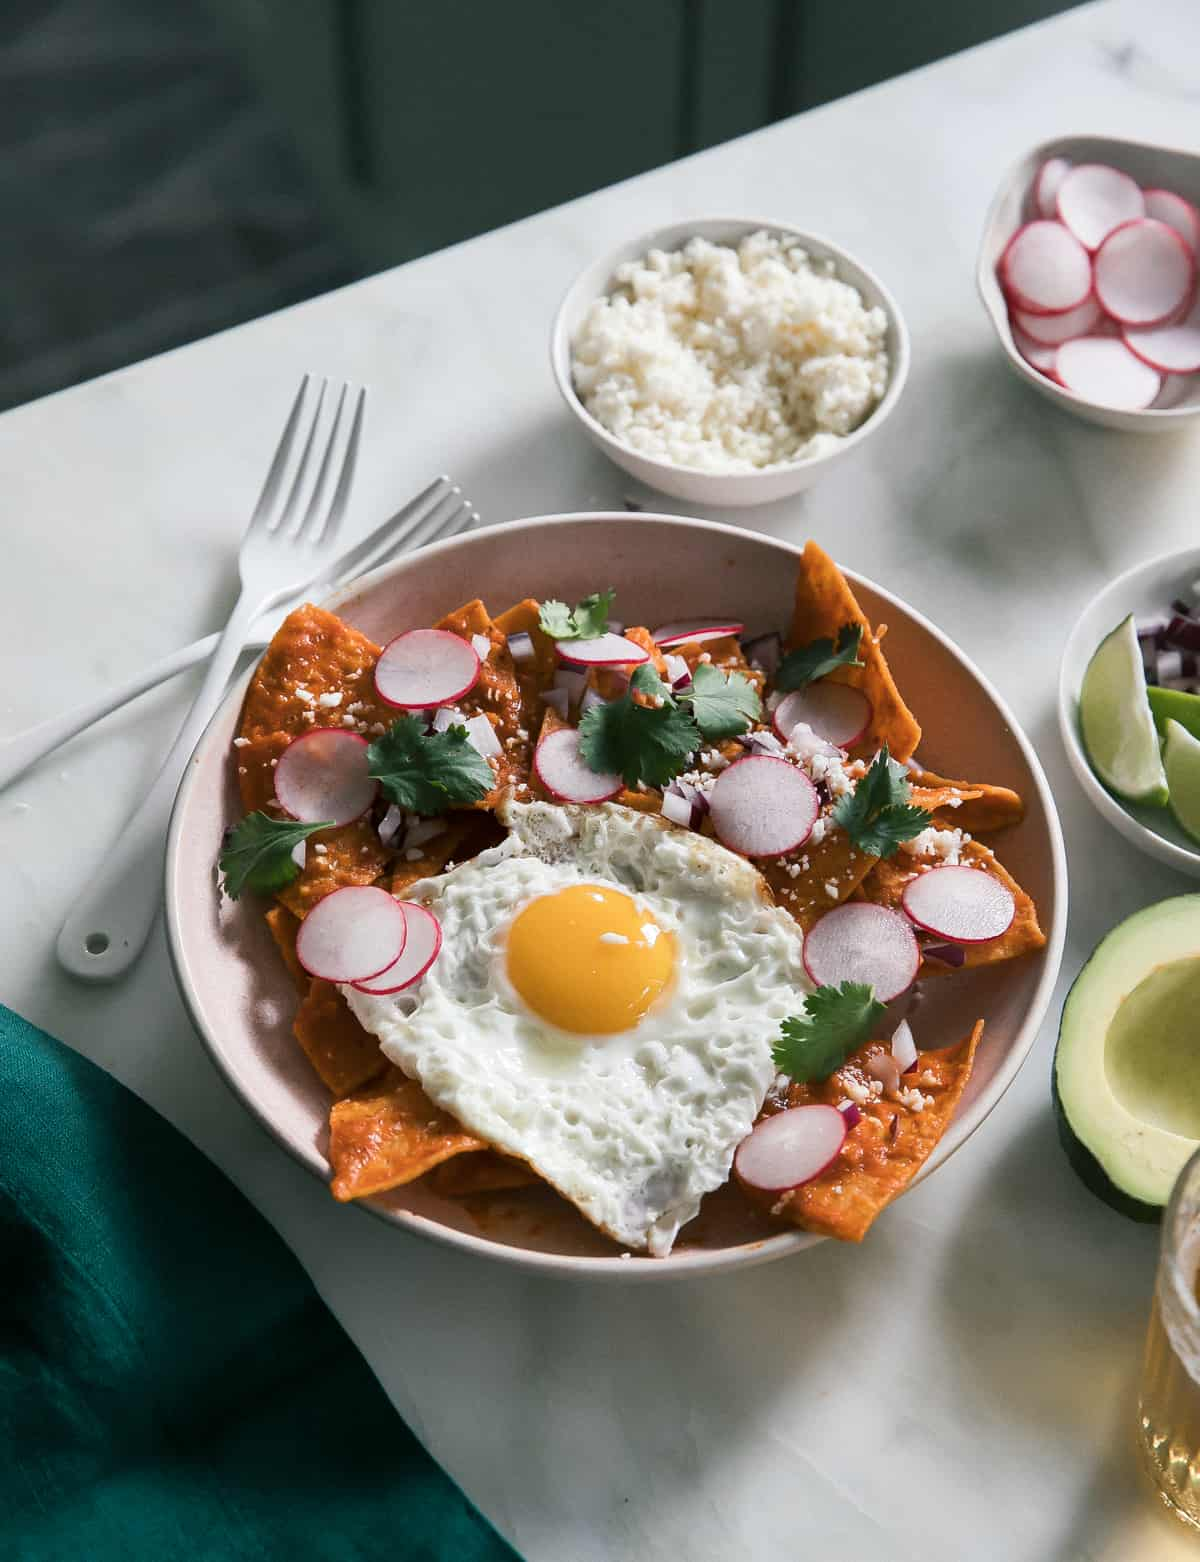 Round plate of Chilaquiles surrounded radishes, limes and avocado